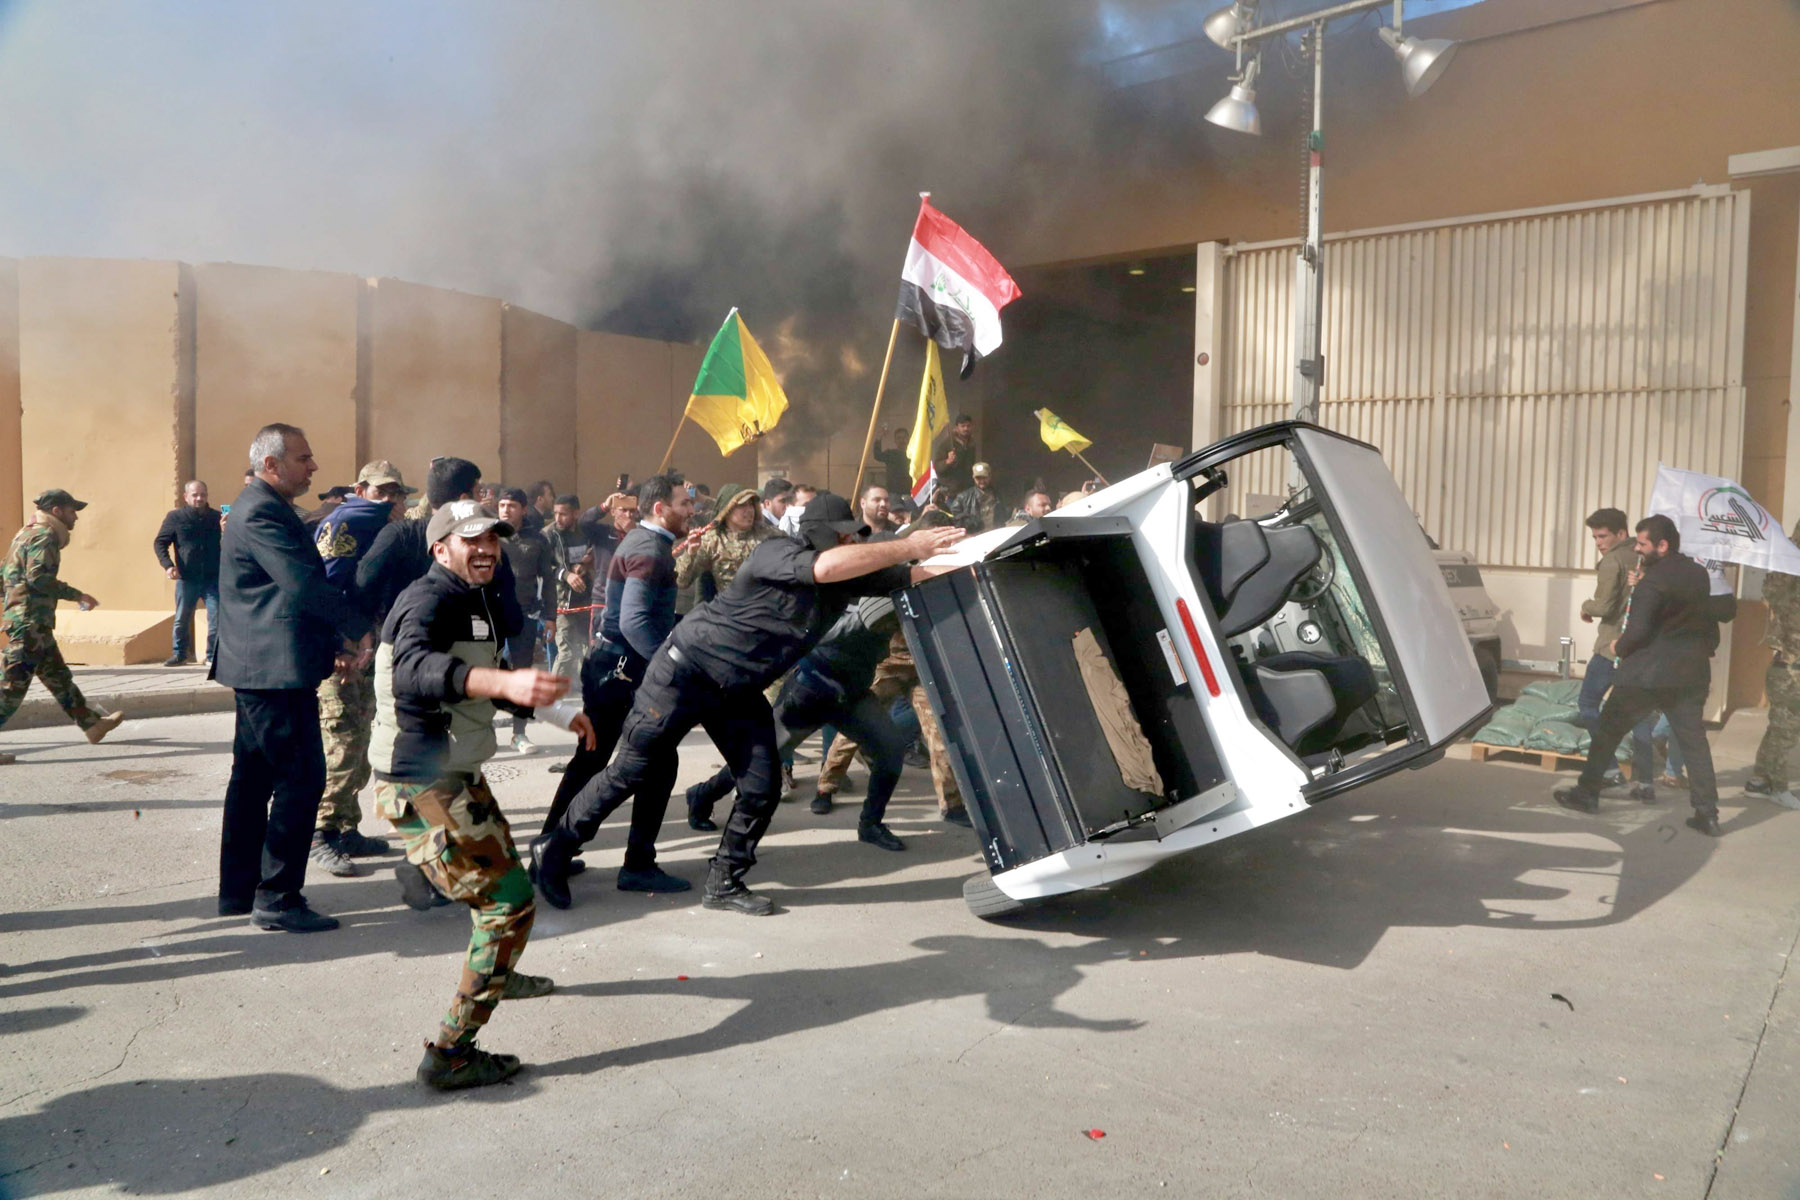 Supporters of Iran-backed Popular Mobilisation Forces damage property inside the US Embassy compound in Baghdad, last December. (AP)